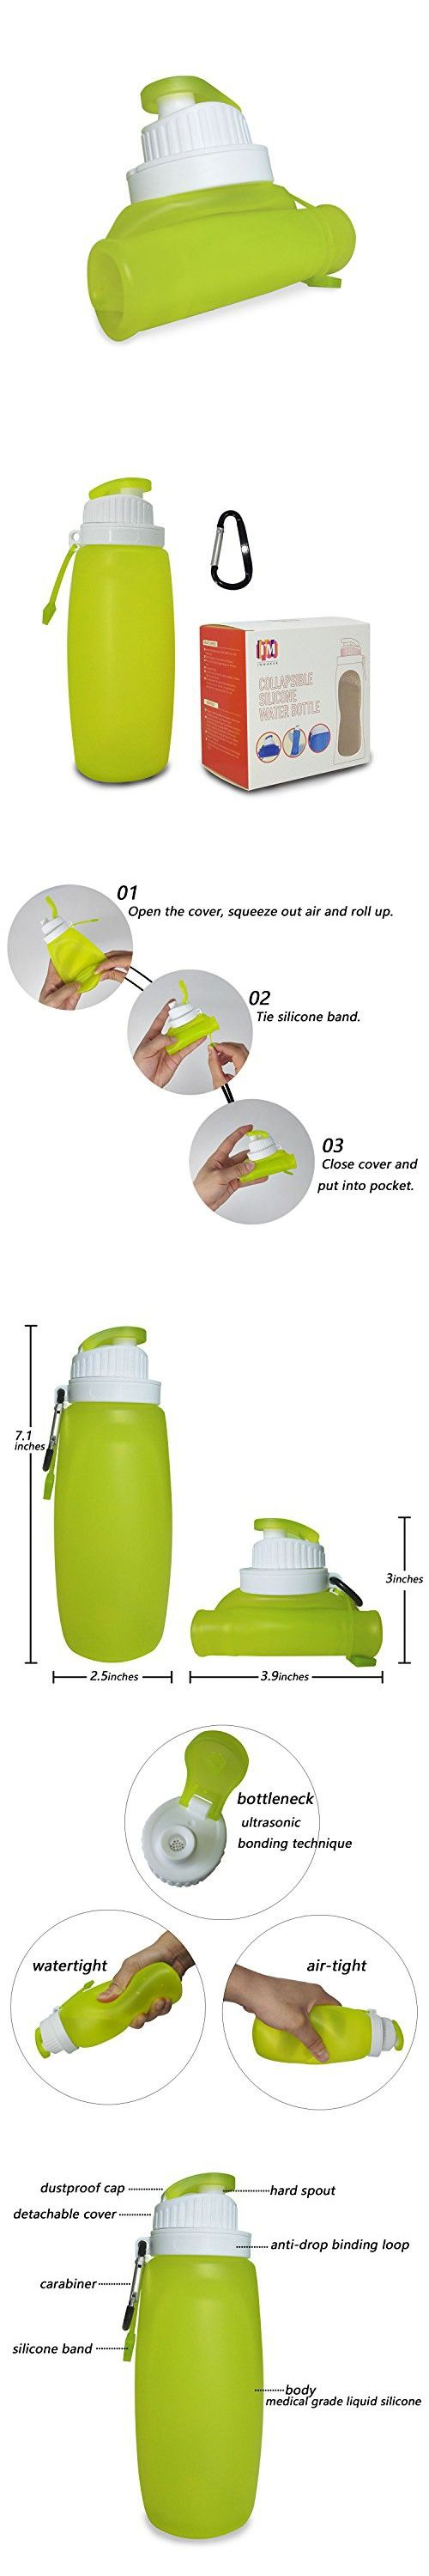 INMKAER Collapsible Water Bottle for Kids, Leak Proof Medical Grade Silicone Travel Water Bottle, 11 fl.oz